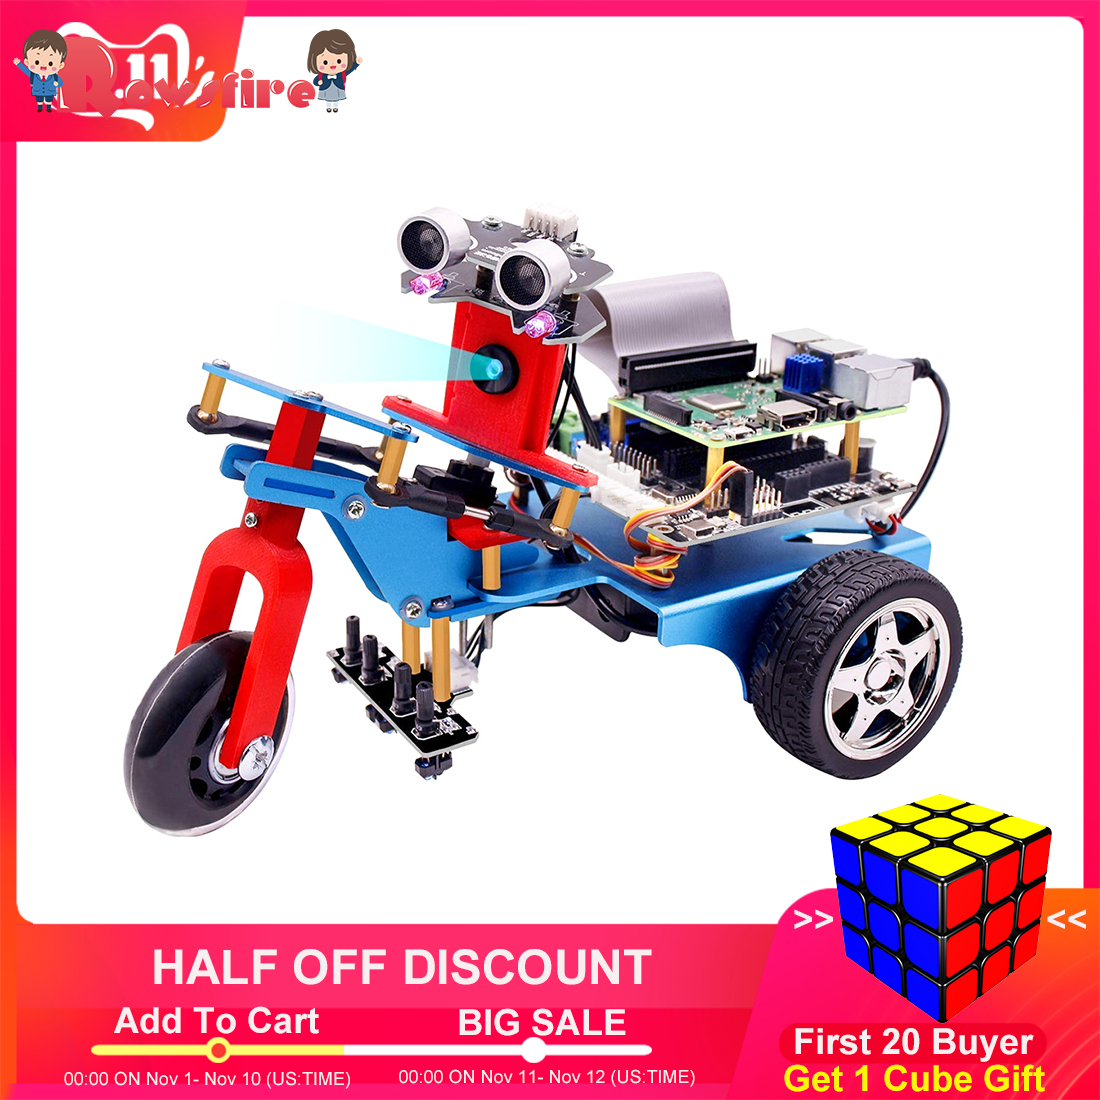 TrikeBot Smart Robot Car Programmable Learning With HD Camera Video DIY Robot With Detailed Electronic Tutorial For Kids Adults